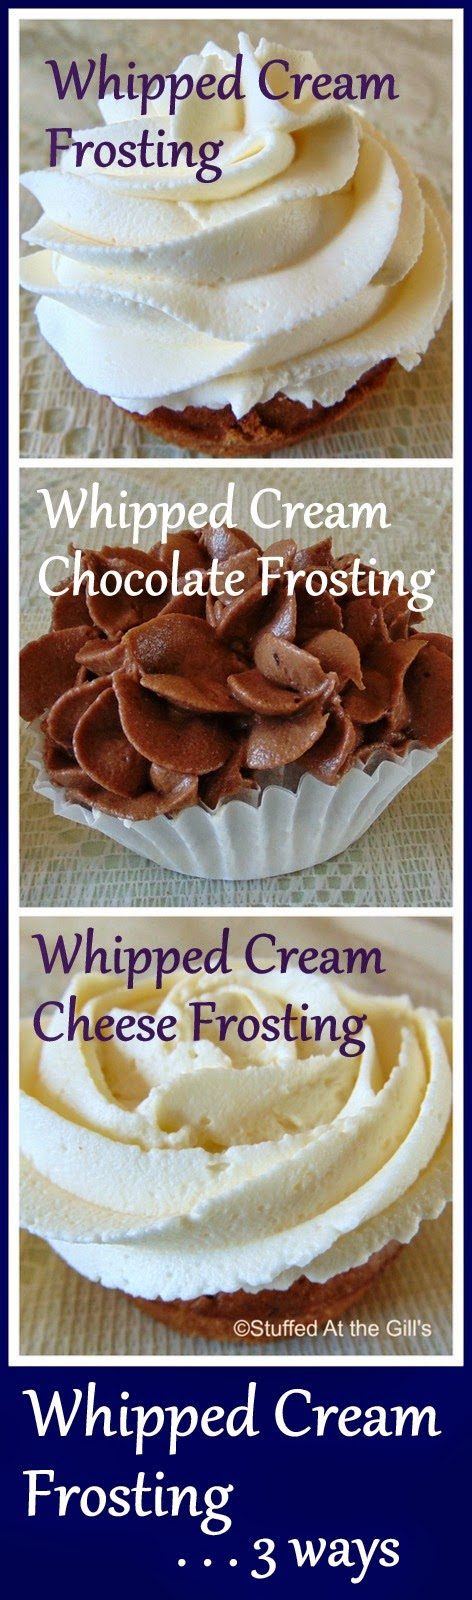 ... whipped cream chocolate frosting whipped cream frosting and whipped